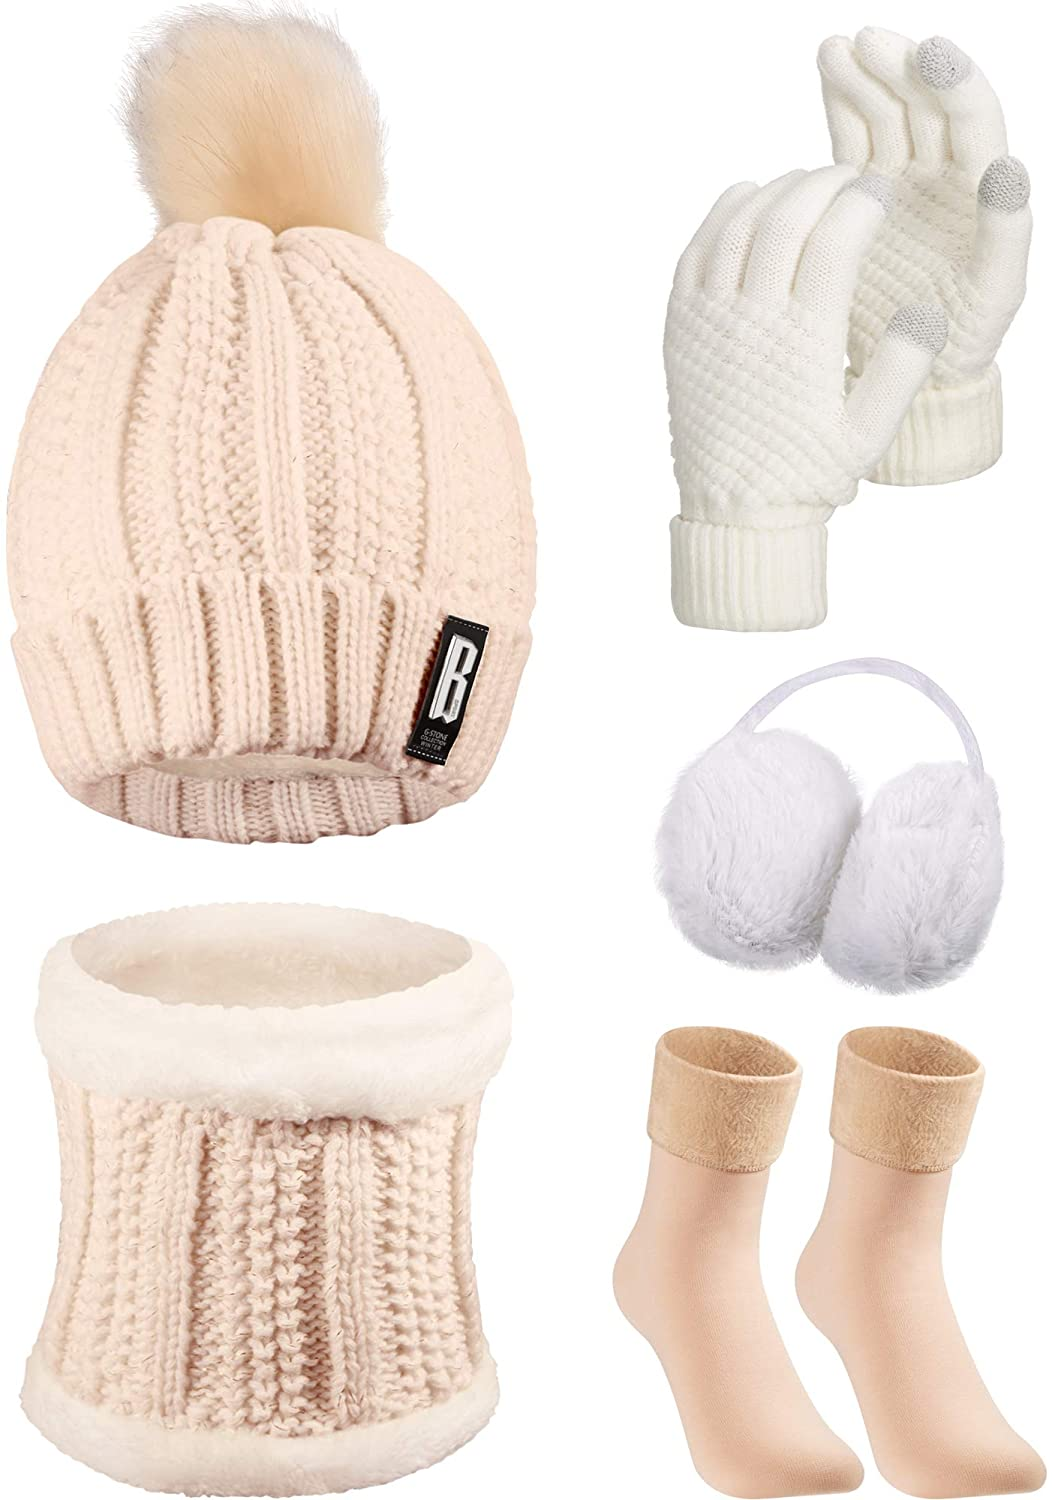 Classier: Buy SATINIOR 5 Pieces Women Winter Ski Outing Set, Knit Hat Scarf Gloves Earmuffs Stockings